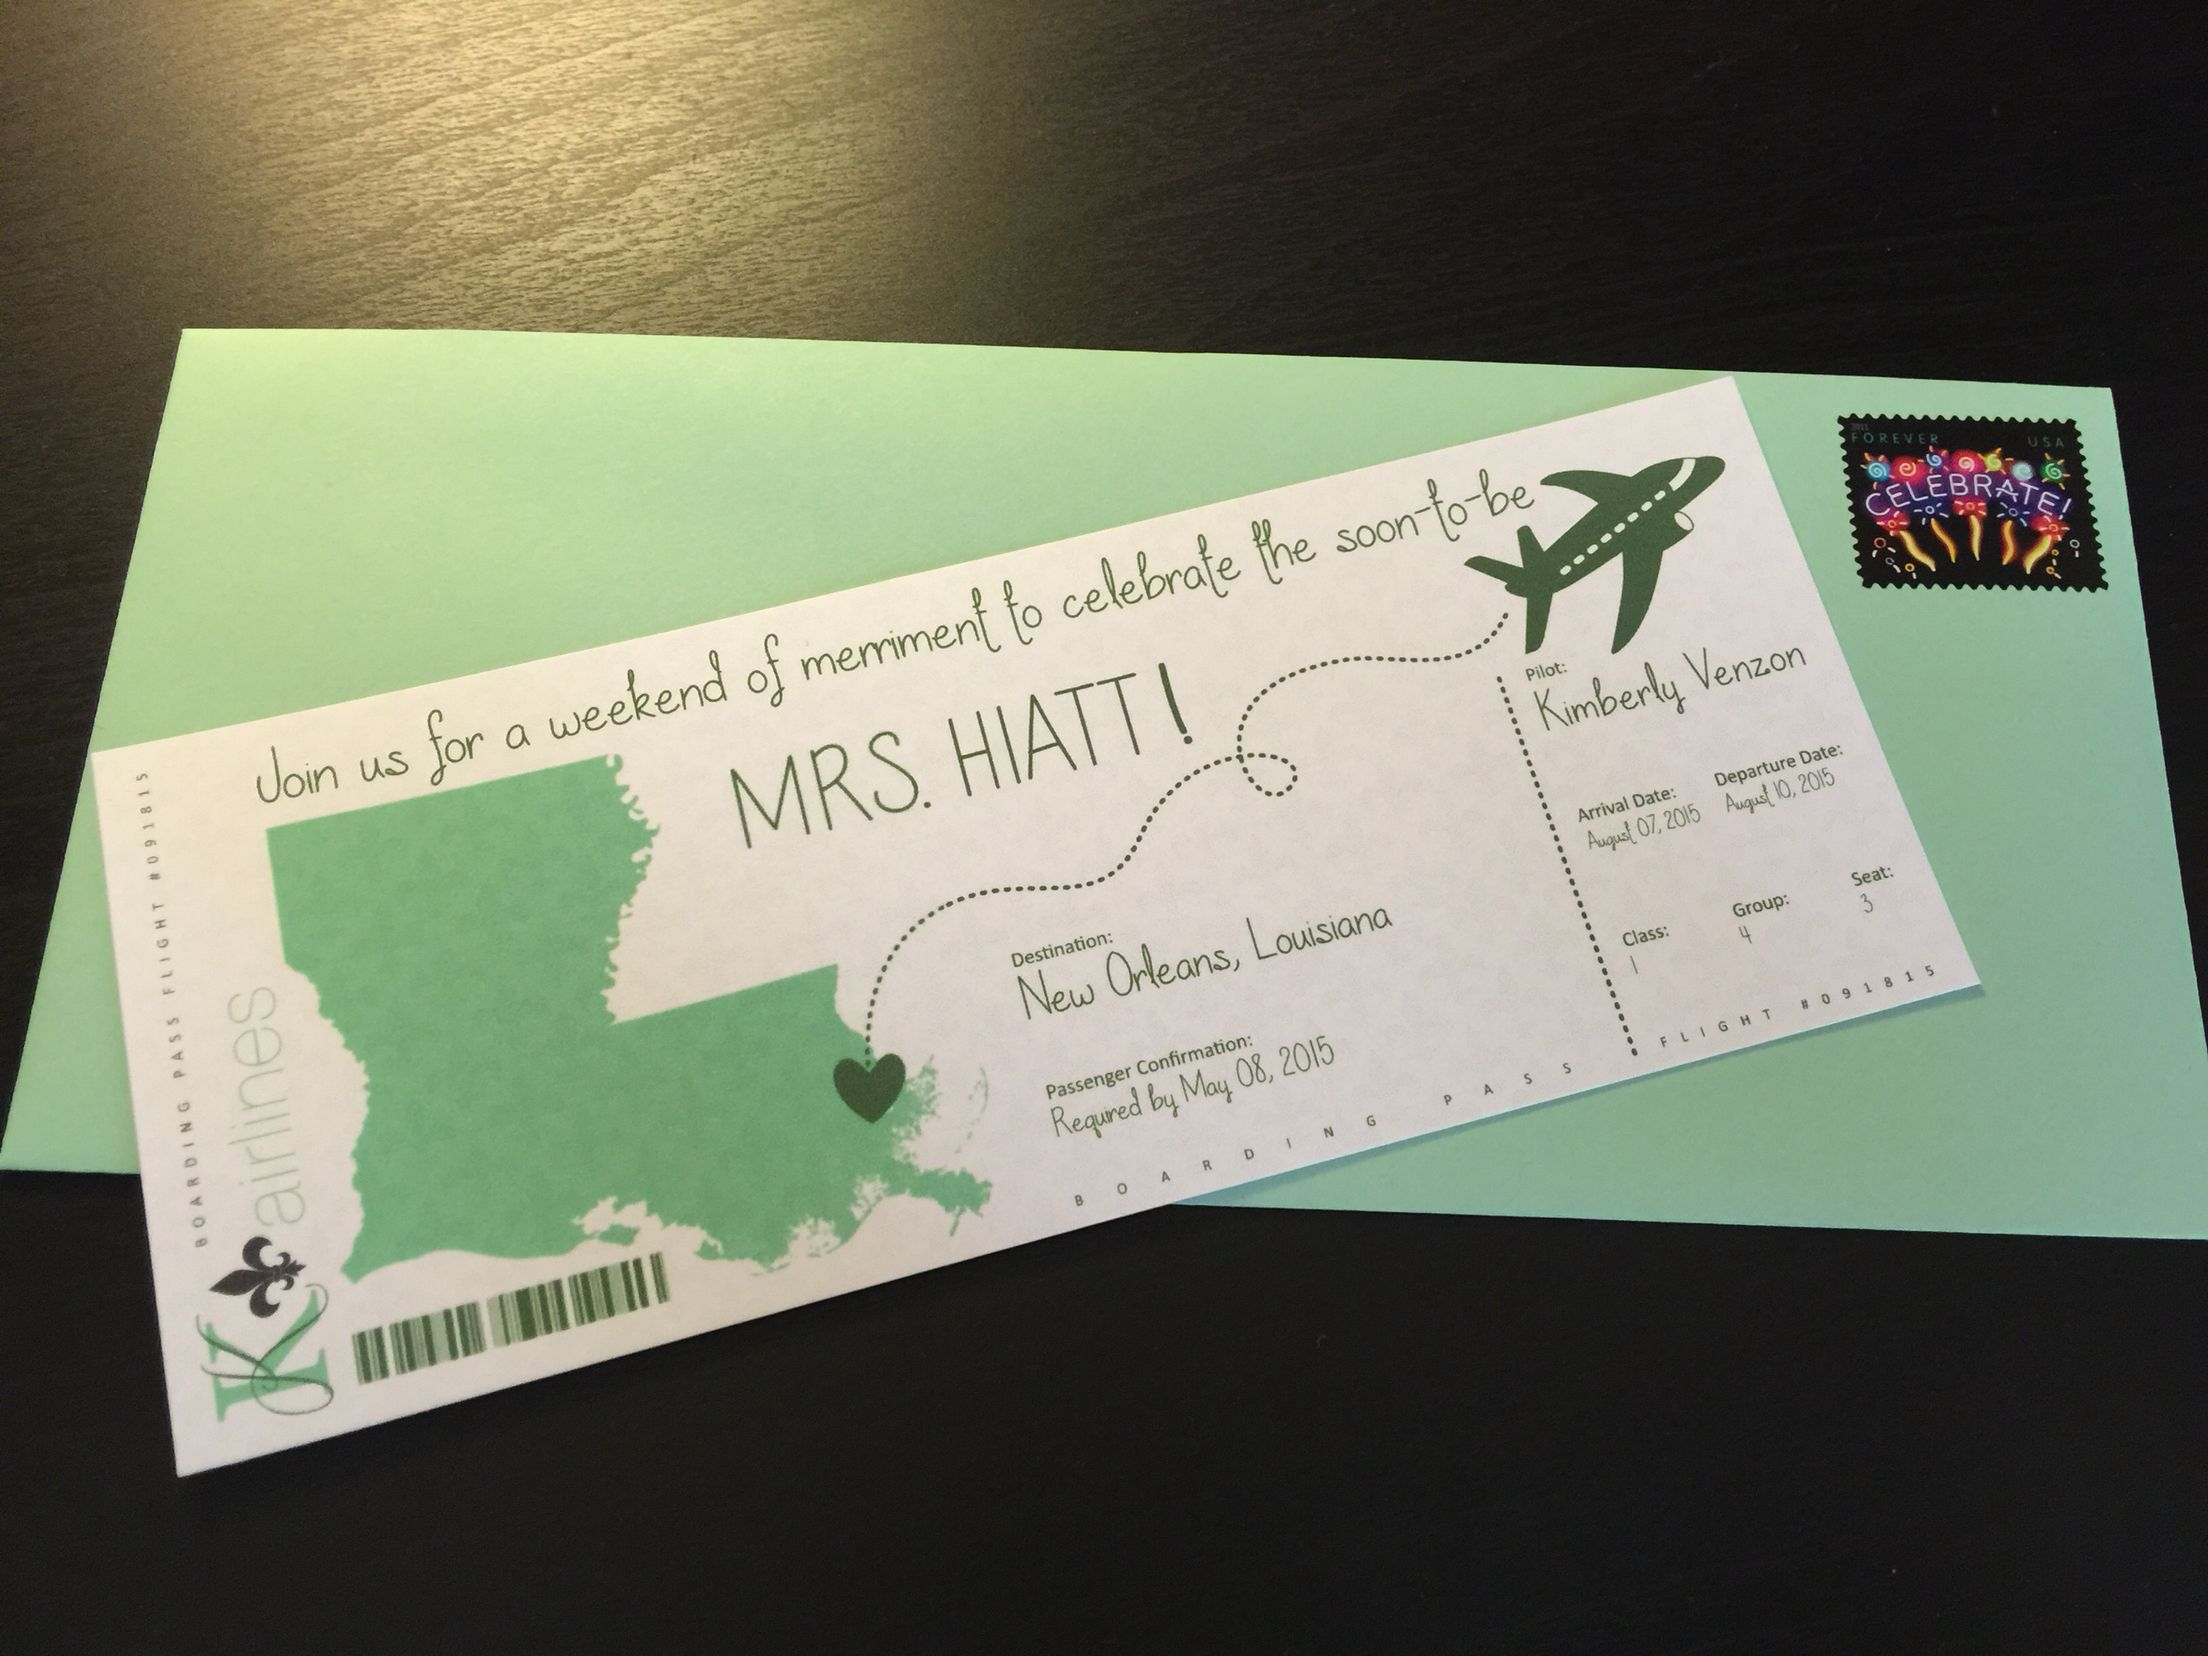 New Orleans bachelorette party boarding pass invites